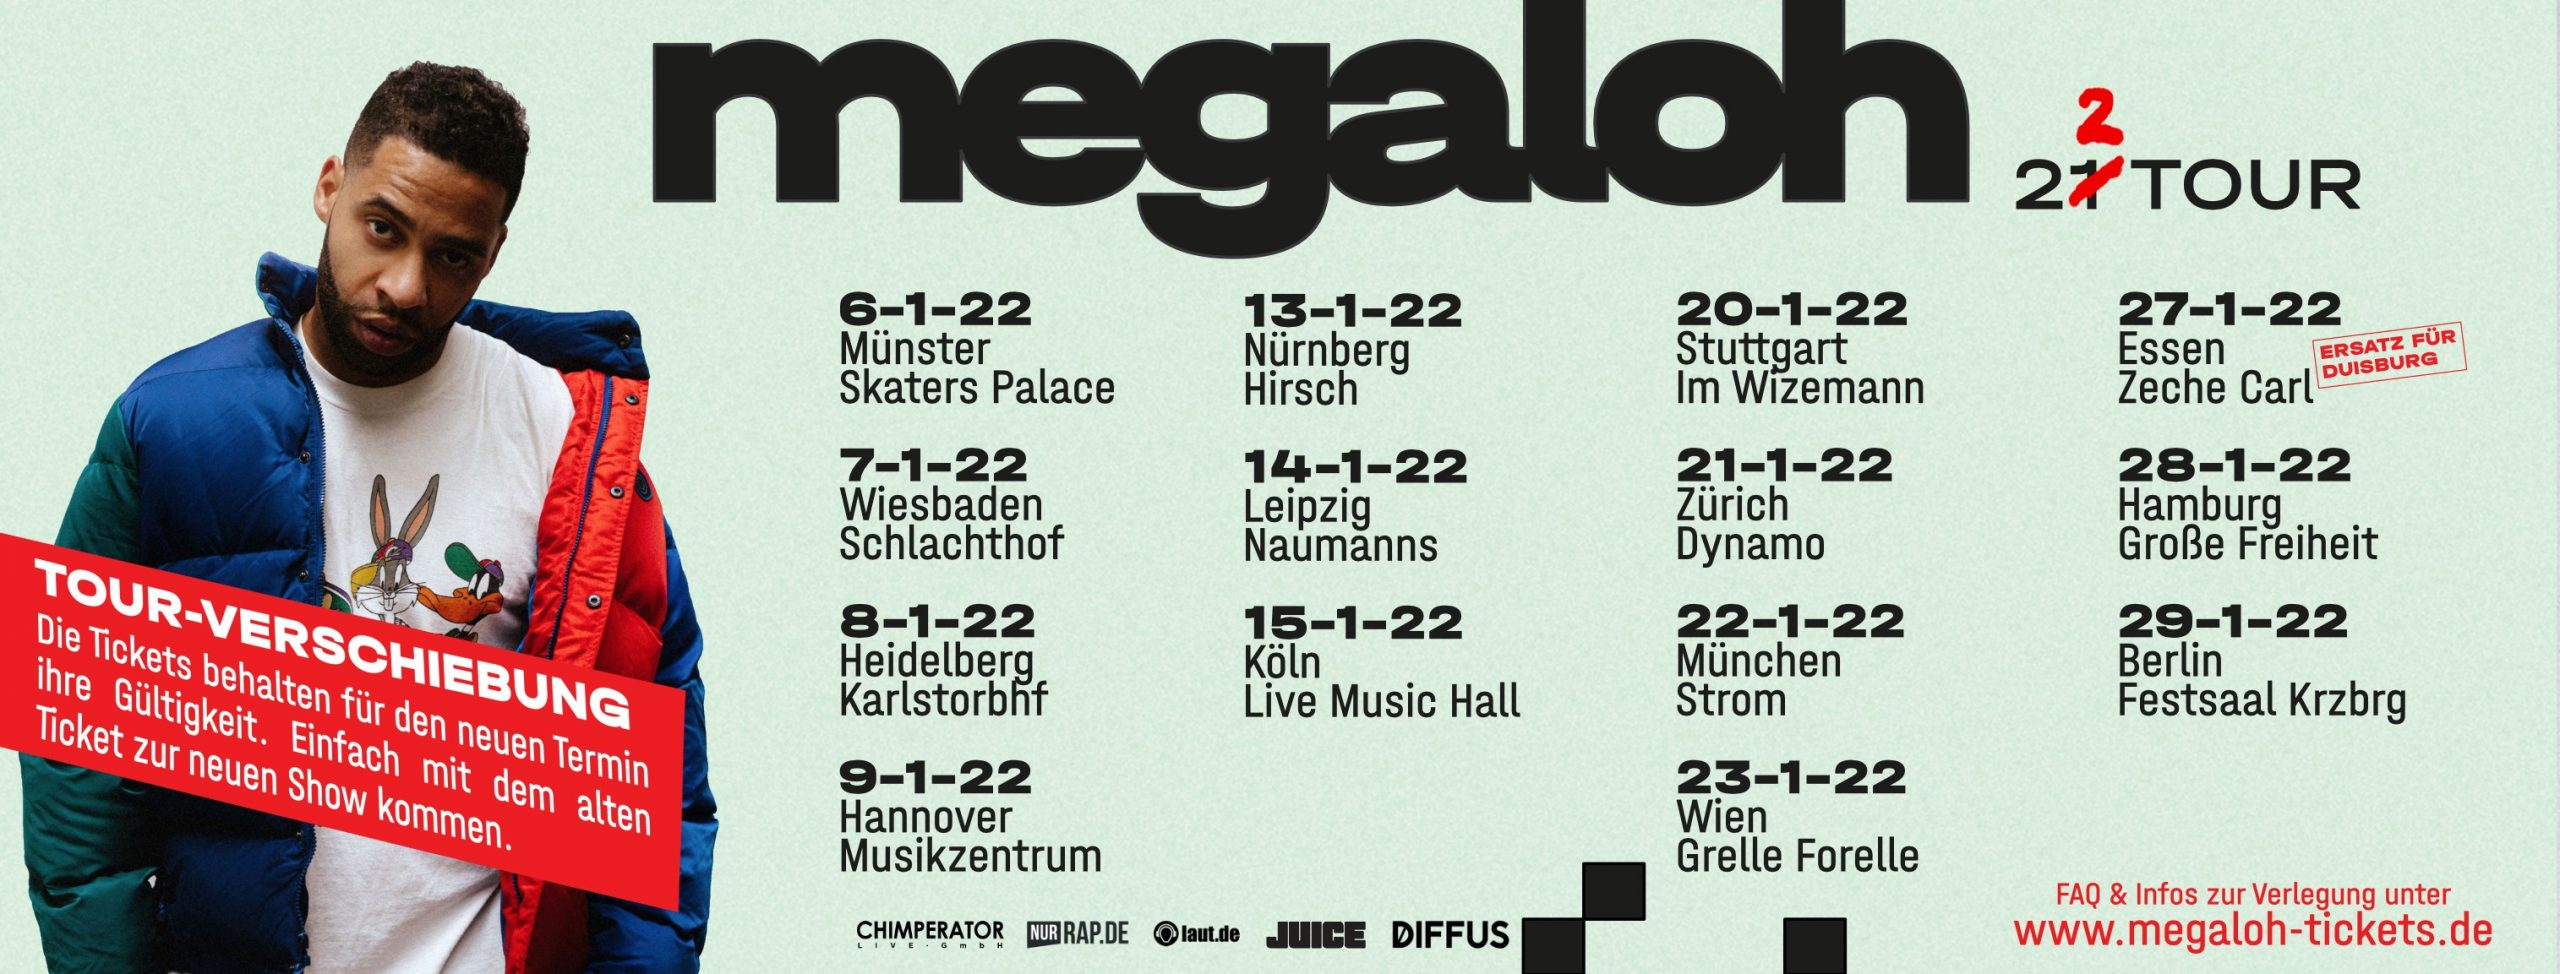 Megaloh am 13. March 2021 @ Grelle Forelle.